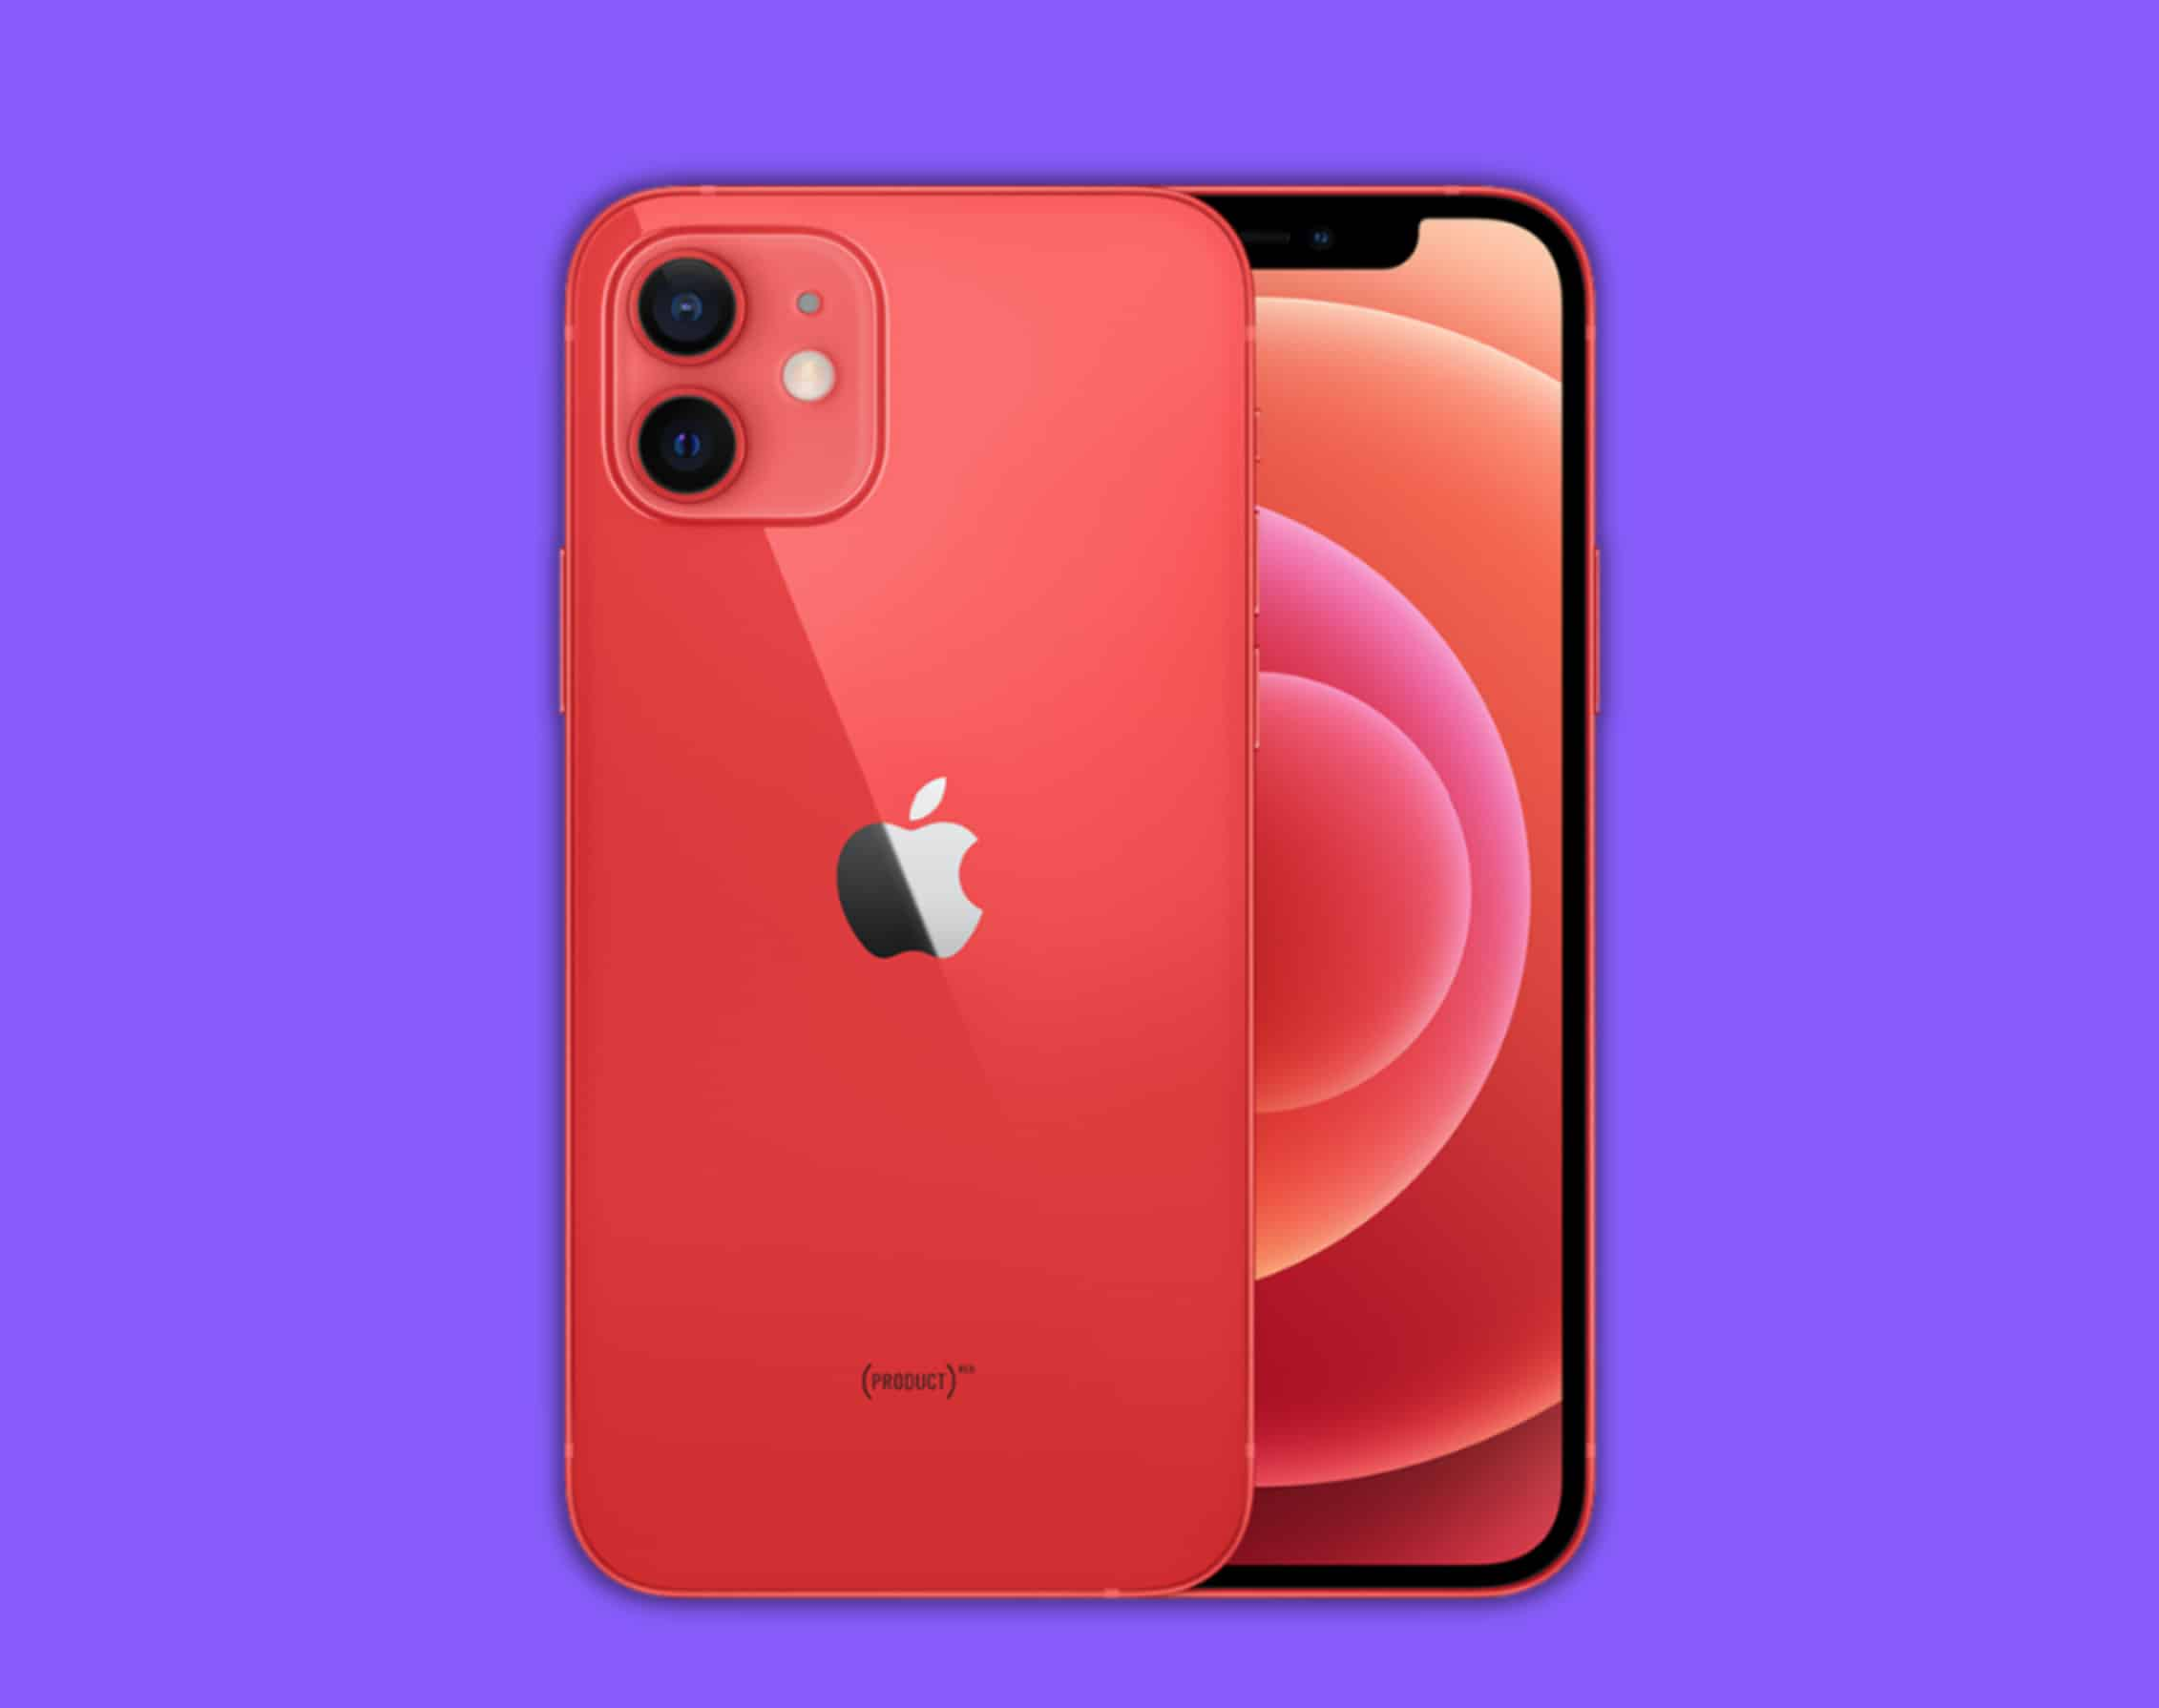 Is The iPhone XS Actually Worth Buying In 2021? My 2¢…